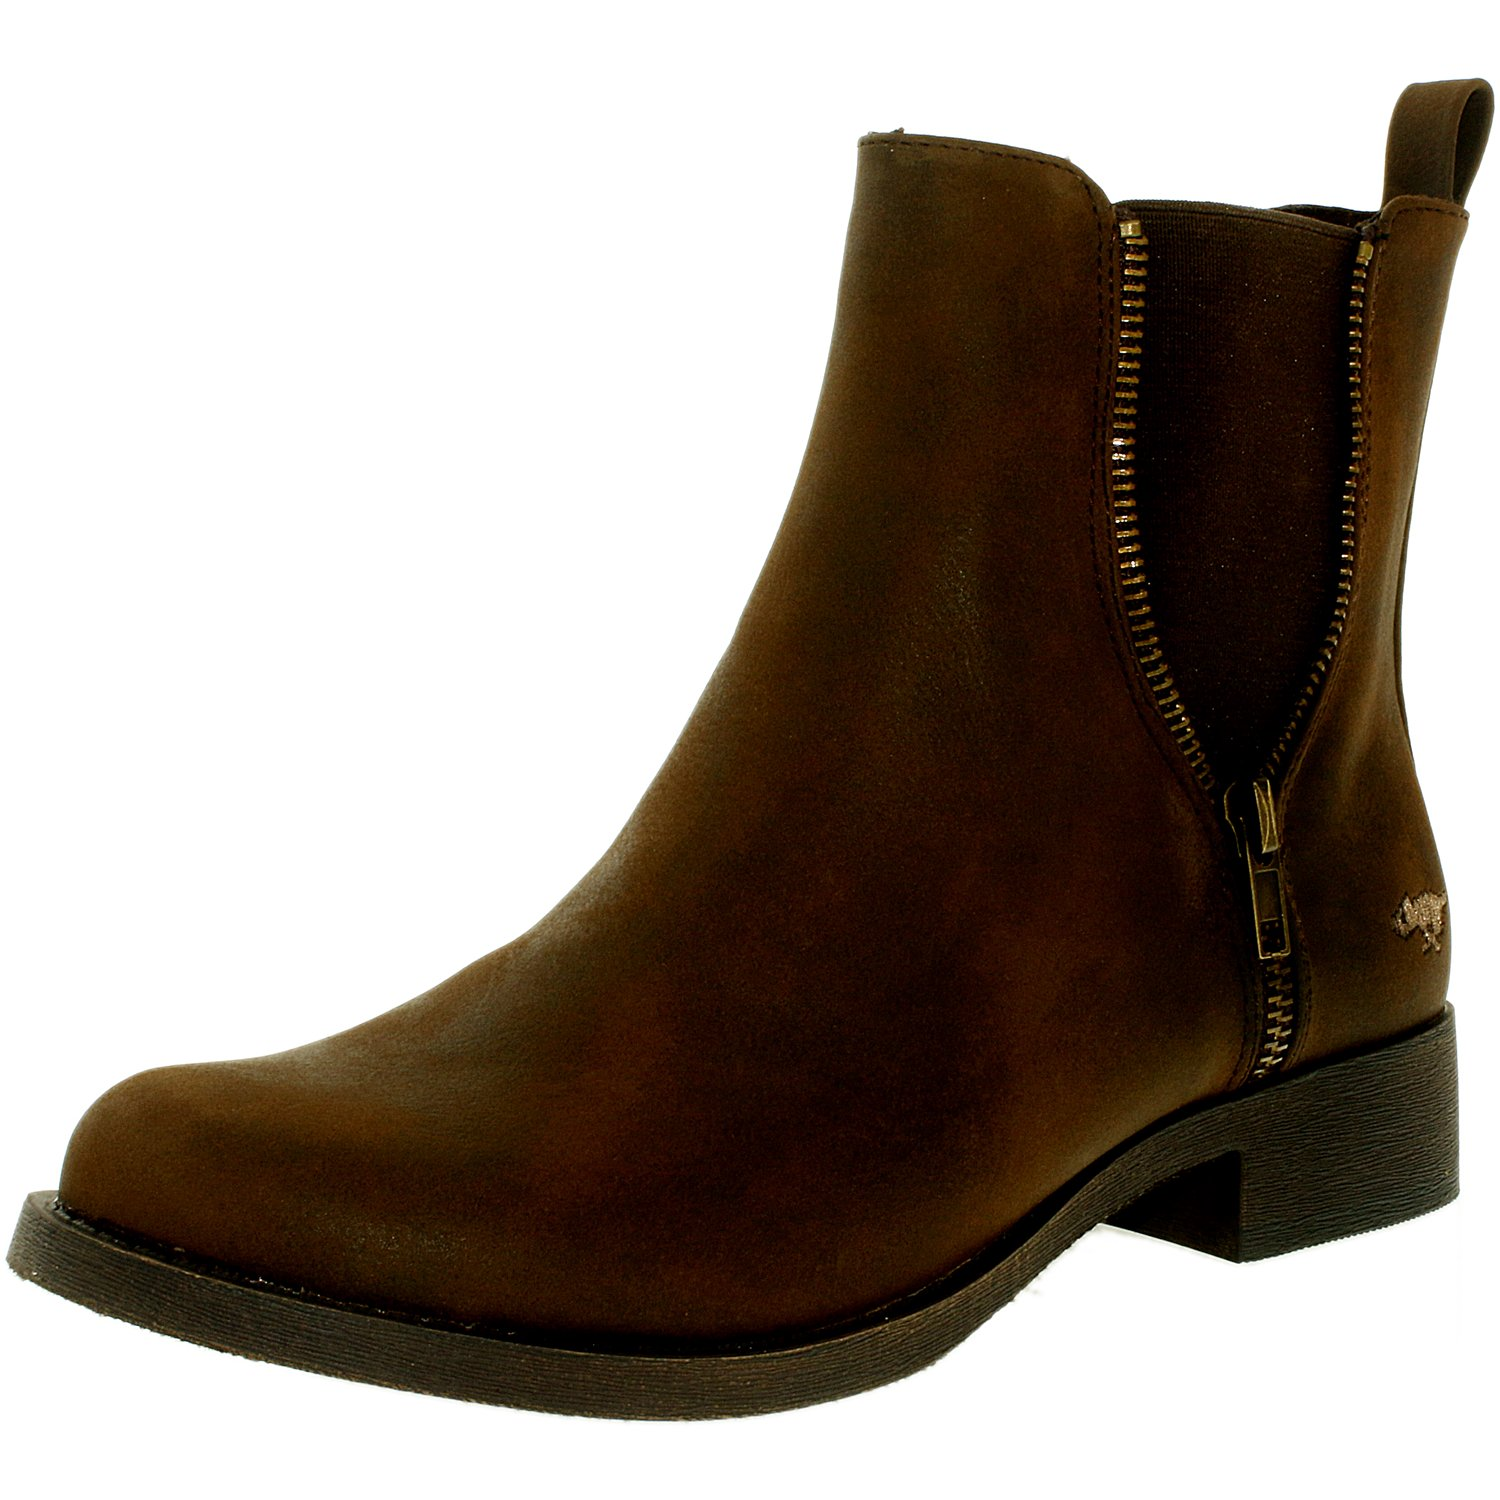 Rocket Dog Women's Camilla Gr Brown Ankle-High Leather Boot - 10M